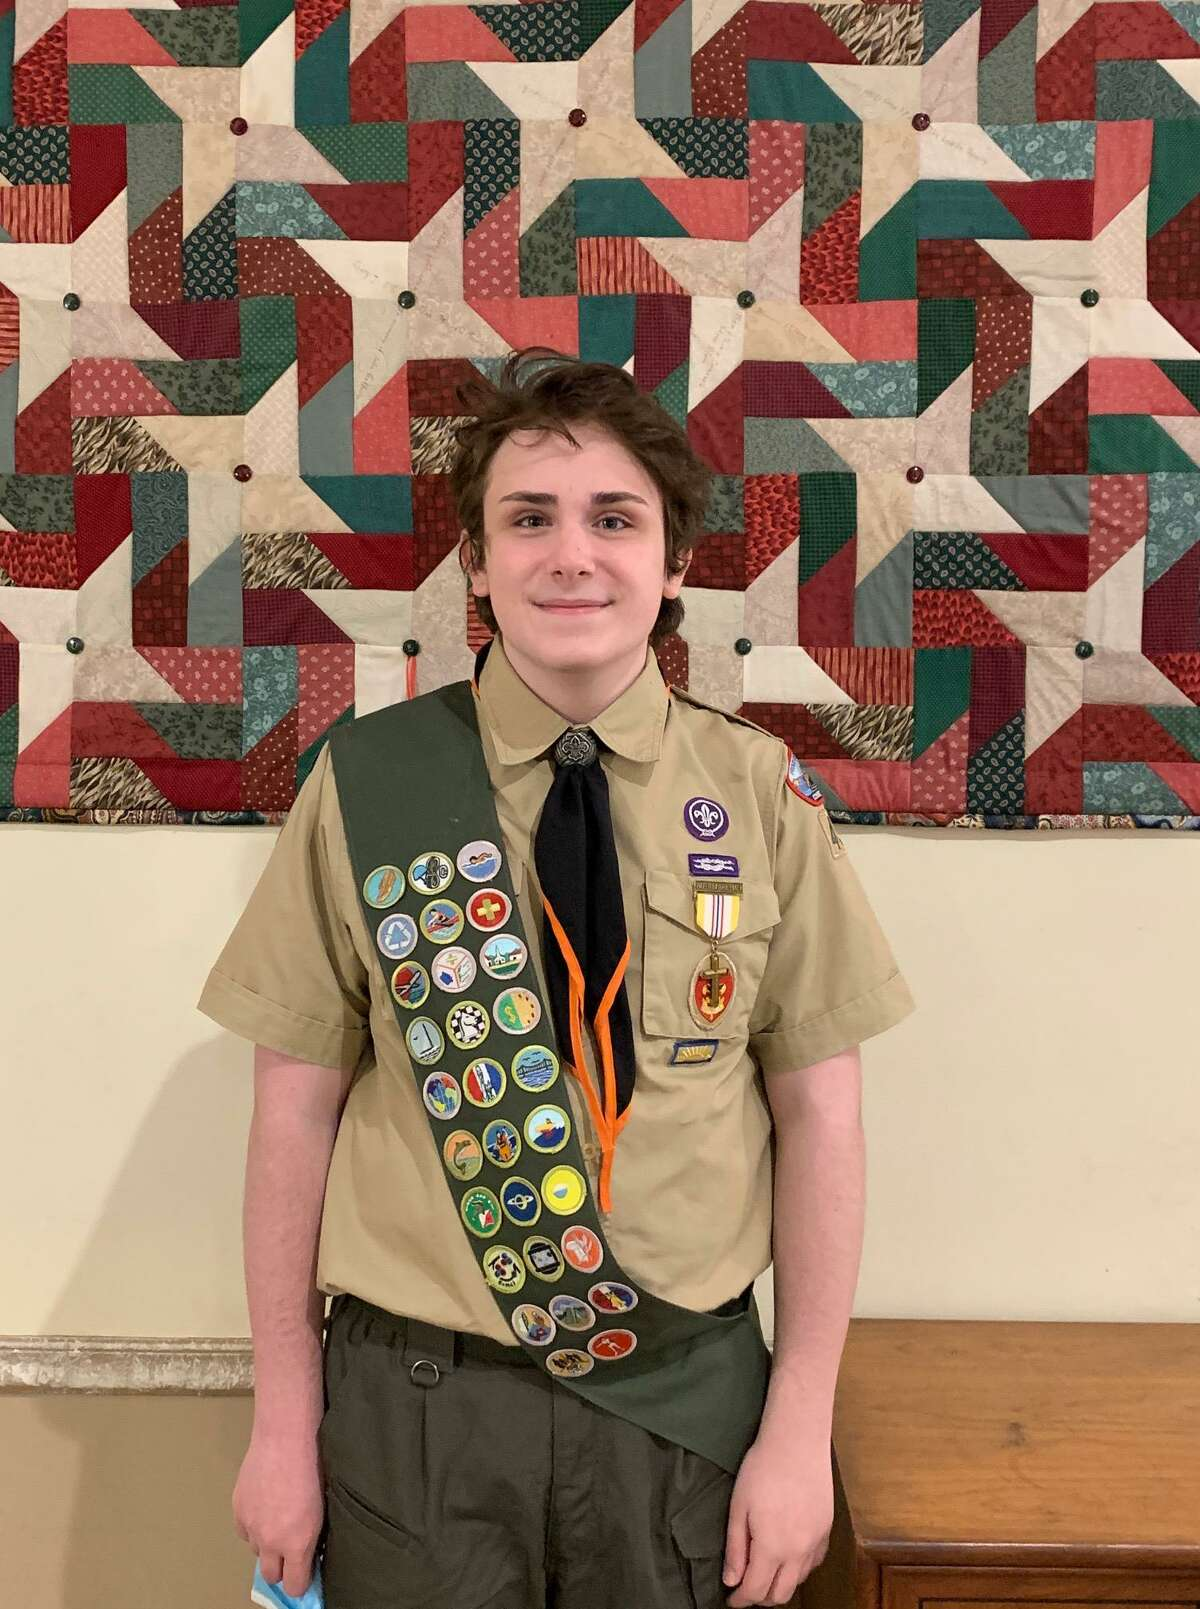 Anthony Raduazzo was recently named an Eagle Scout of Boy Scouts of America Troop 431 in Ridgefield.